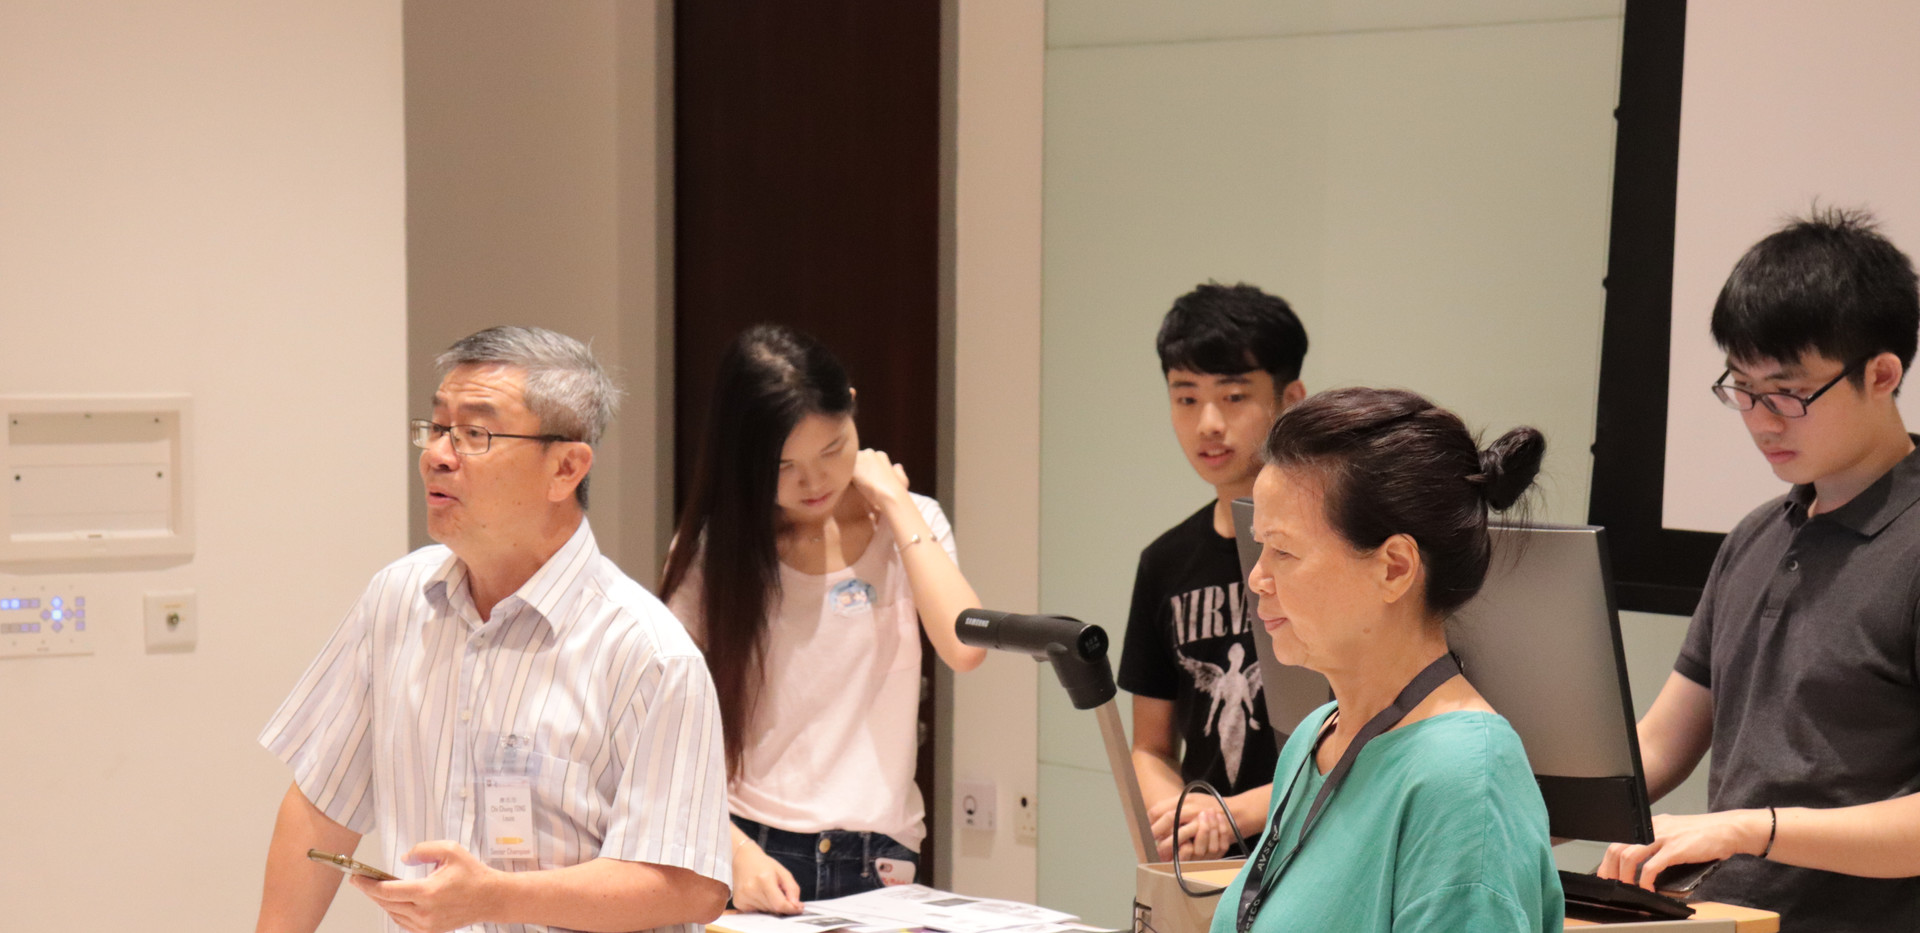 """[Legal talks] """"Outreach Legal Talks Initiative"""" (HKU OUTLET)'s second and finallegal talk for """"Senior Champions"""" and their friends (June 22nd, 2019)"""